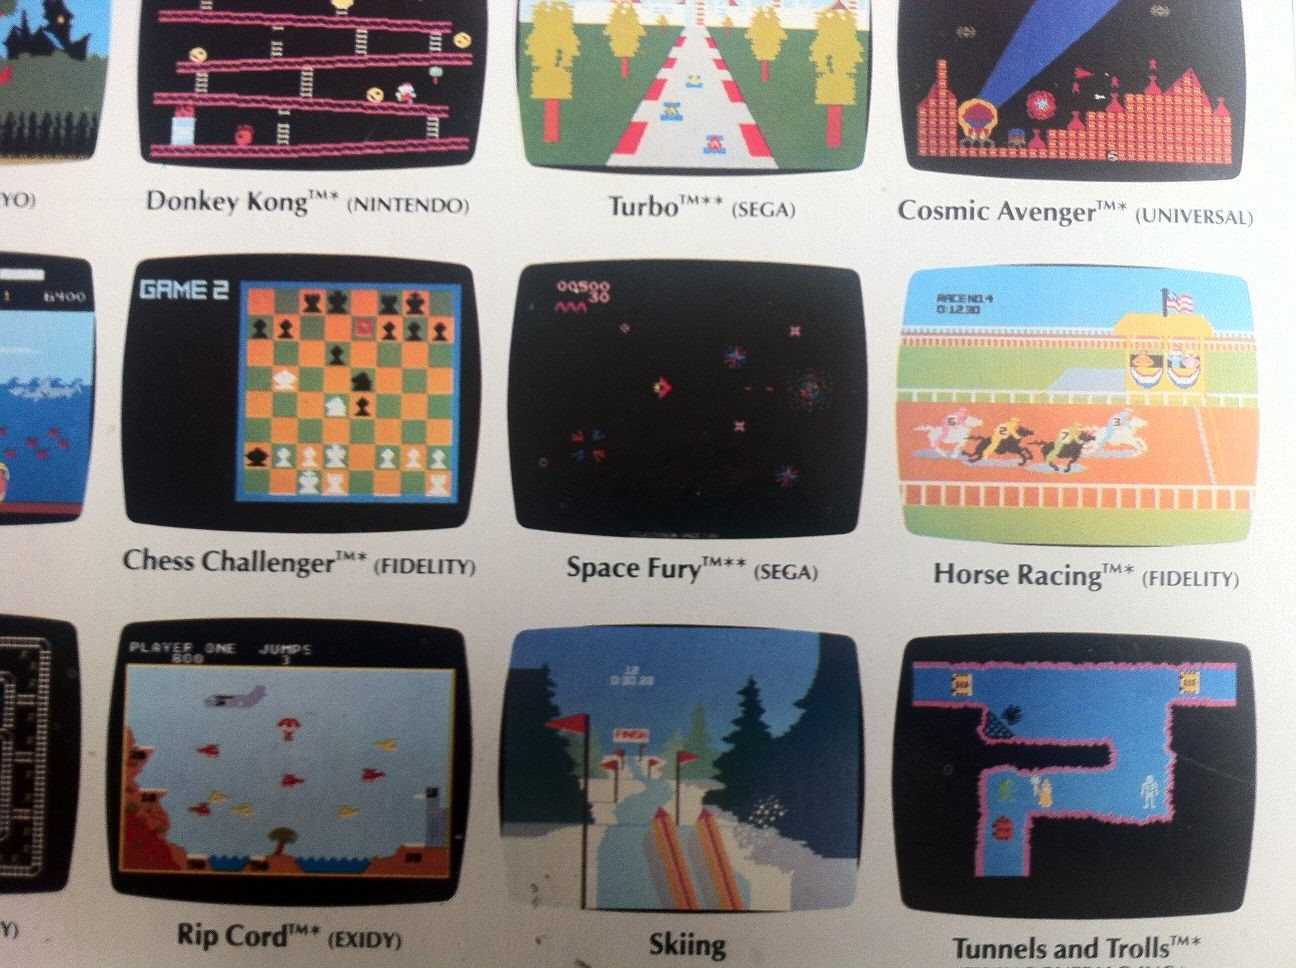 images/colecovision/image004.jpg